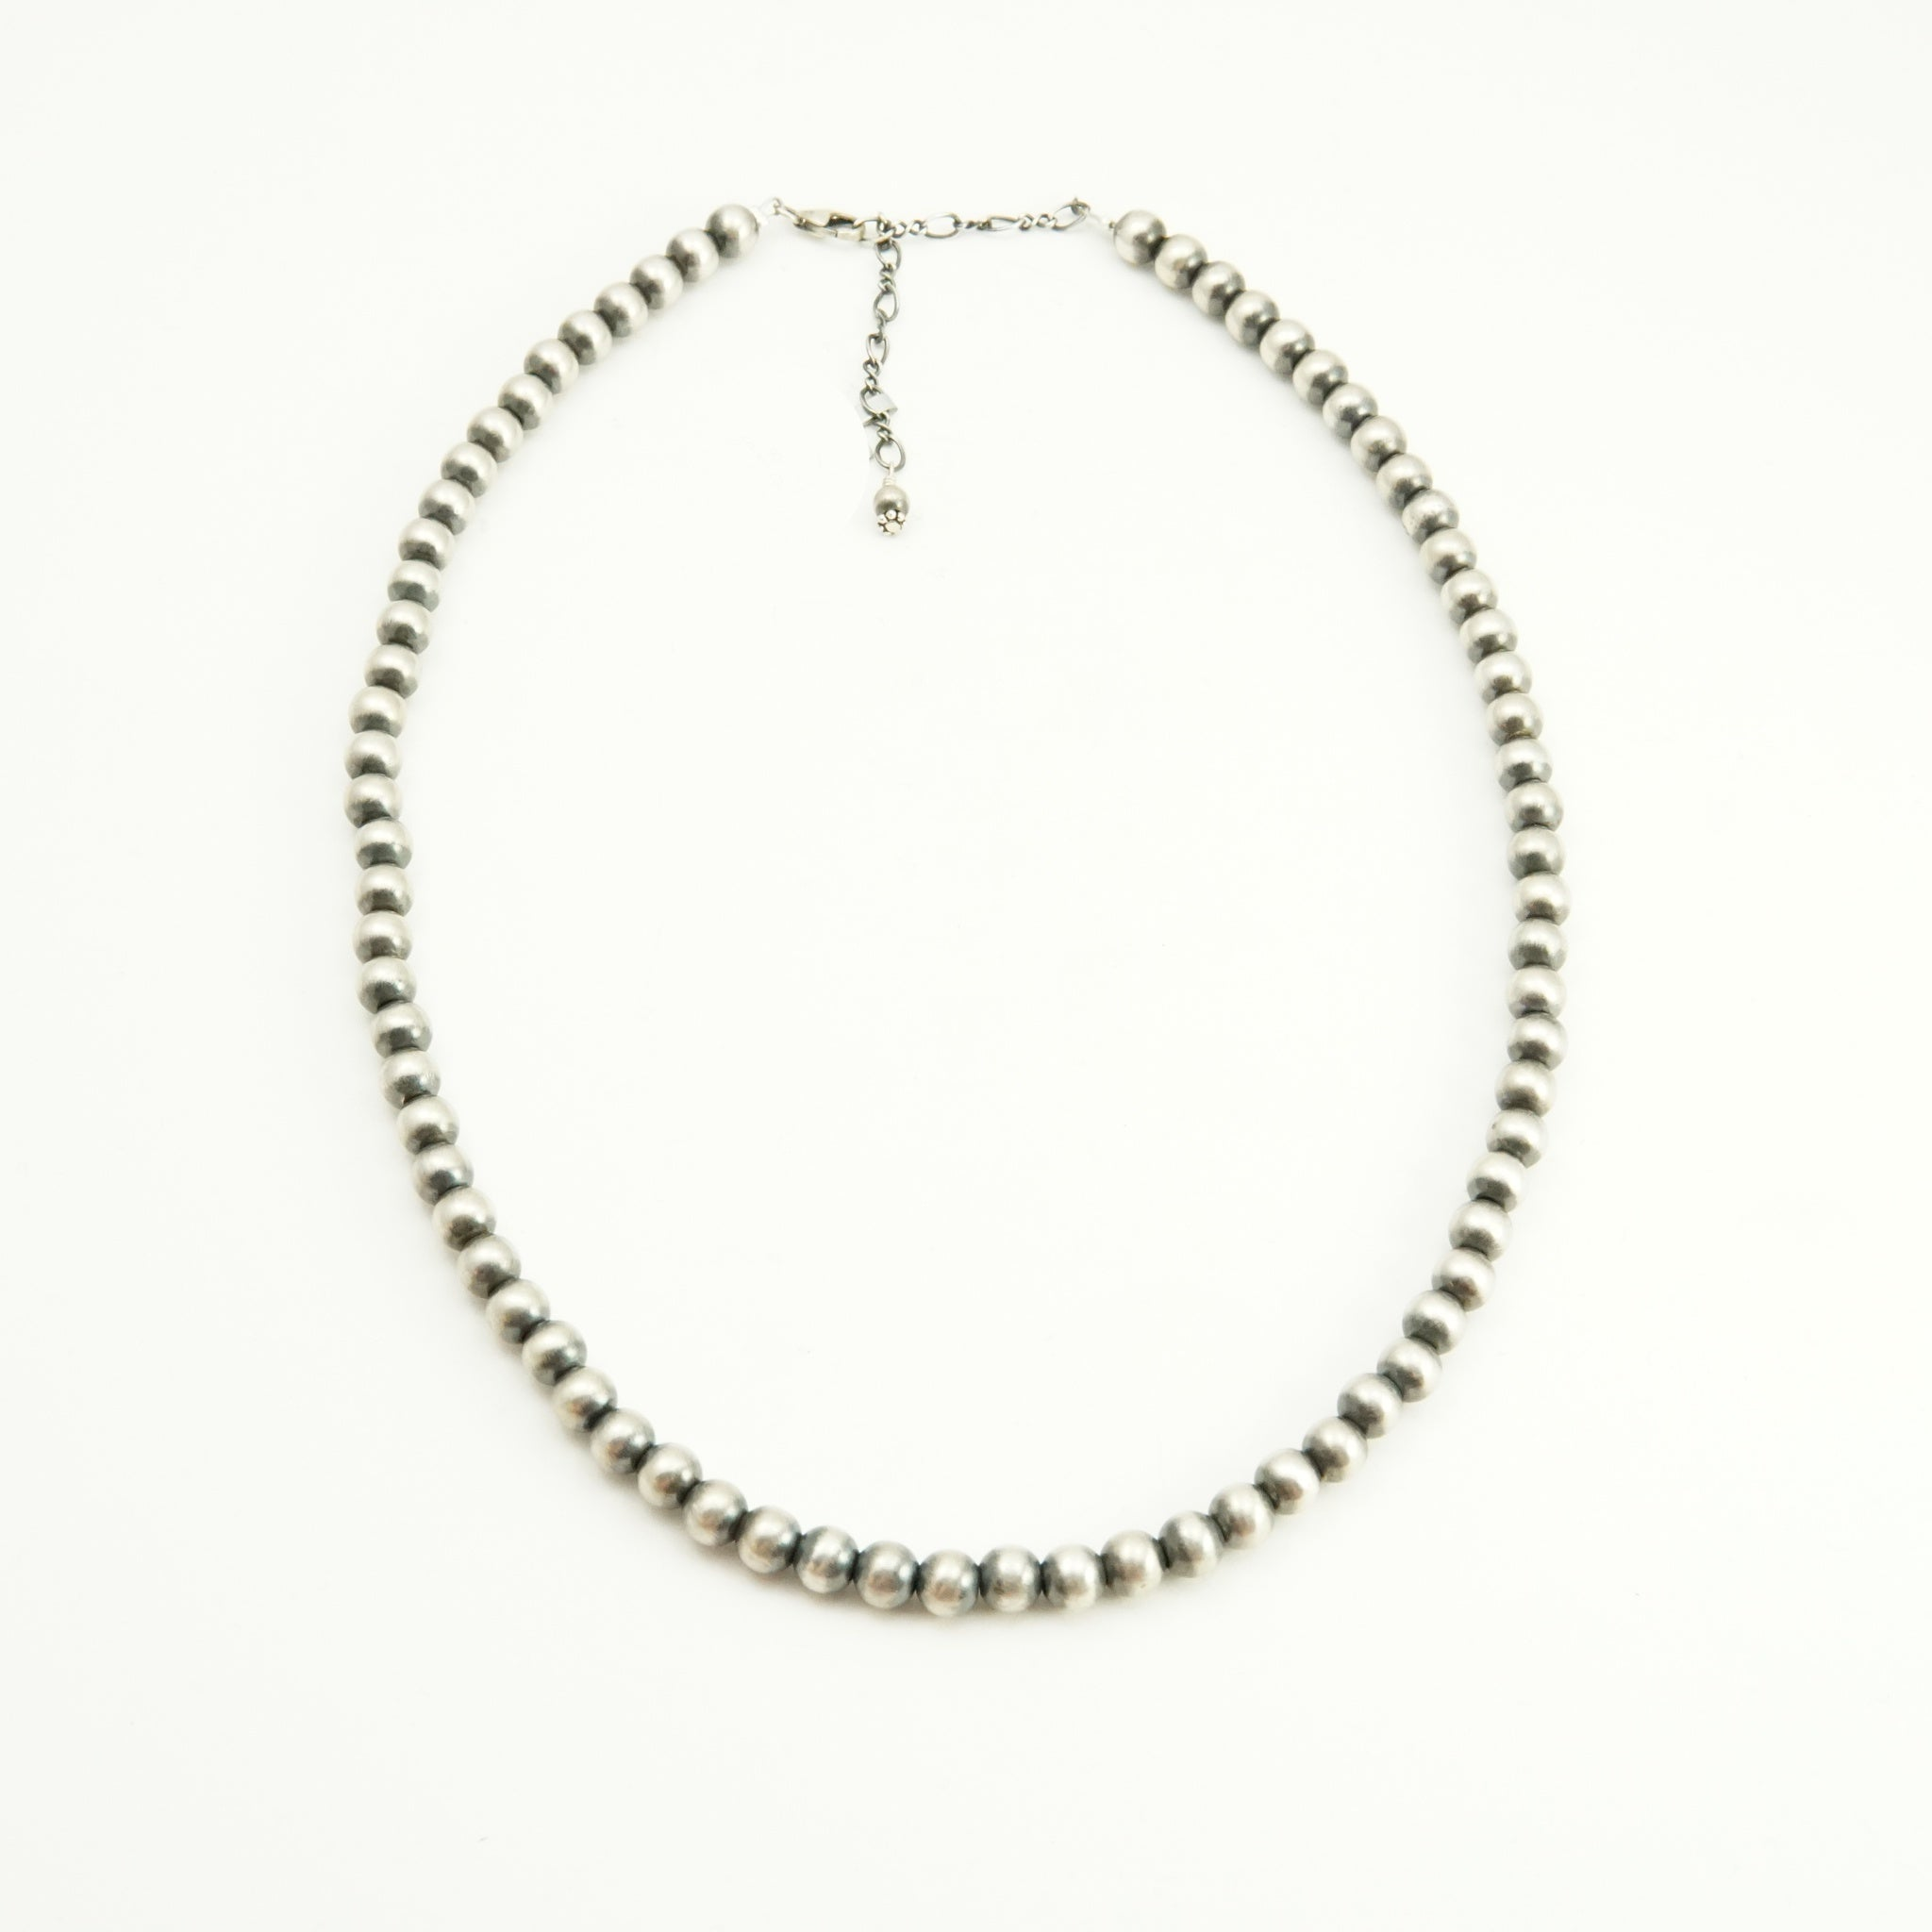 "NK 16"" BEAD NECKLACE"